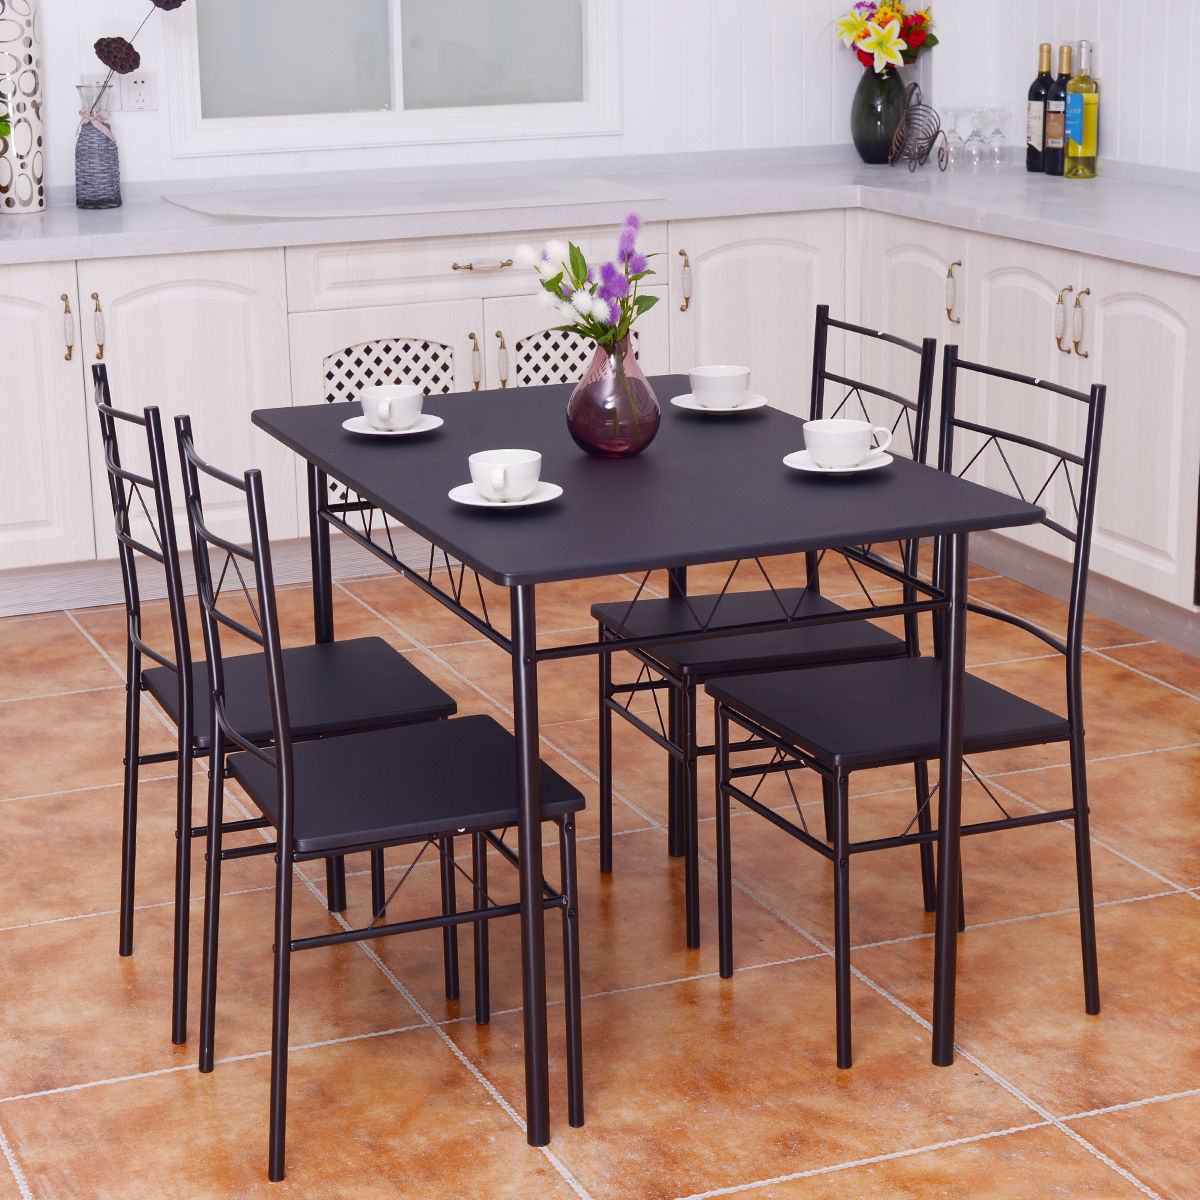 Costway 5 Piece Dining Table Set 4 Chairs Wood Metal